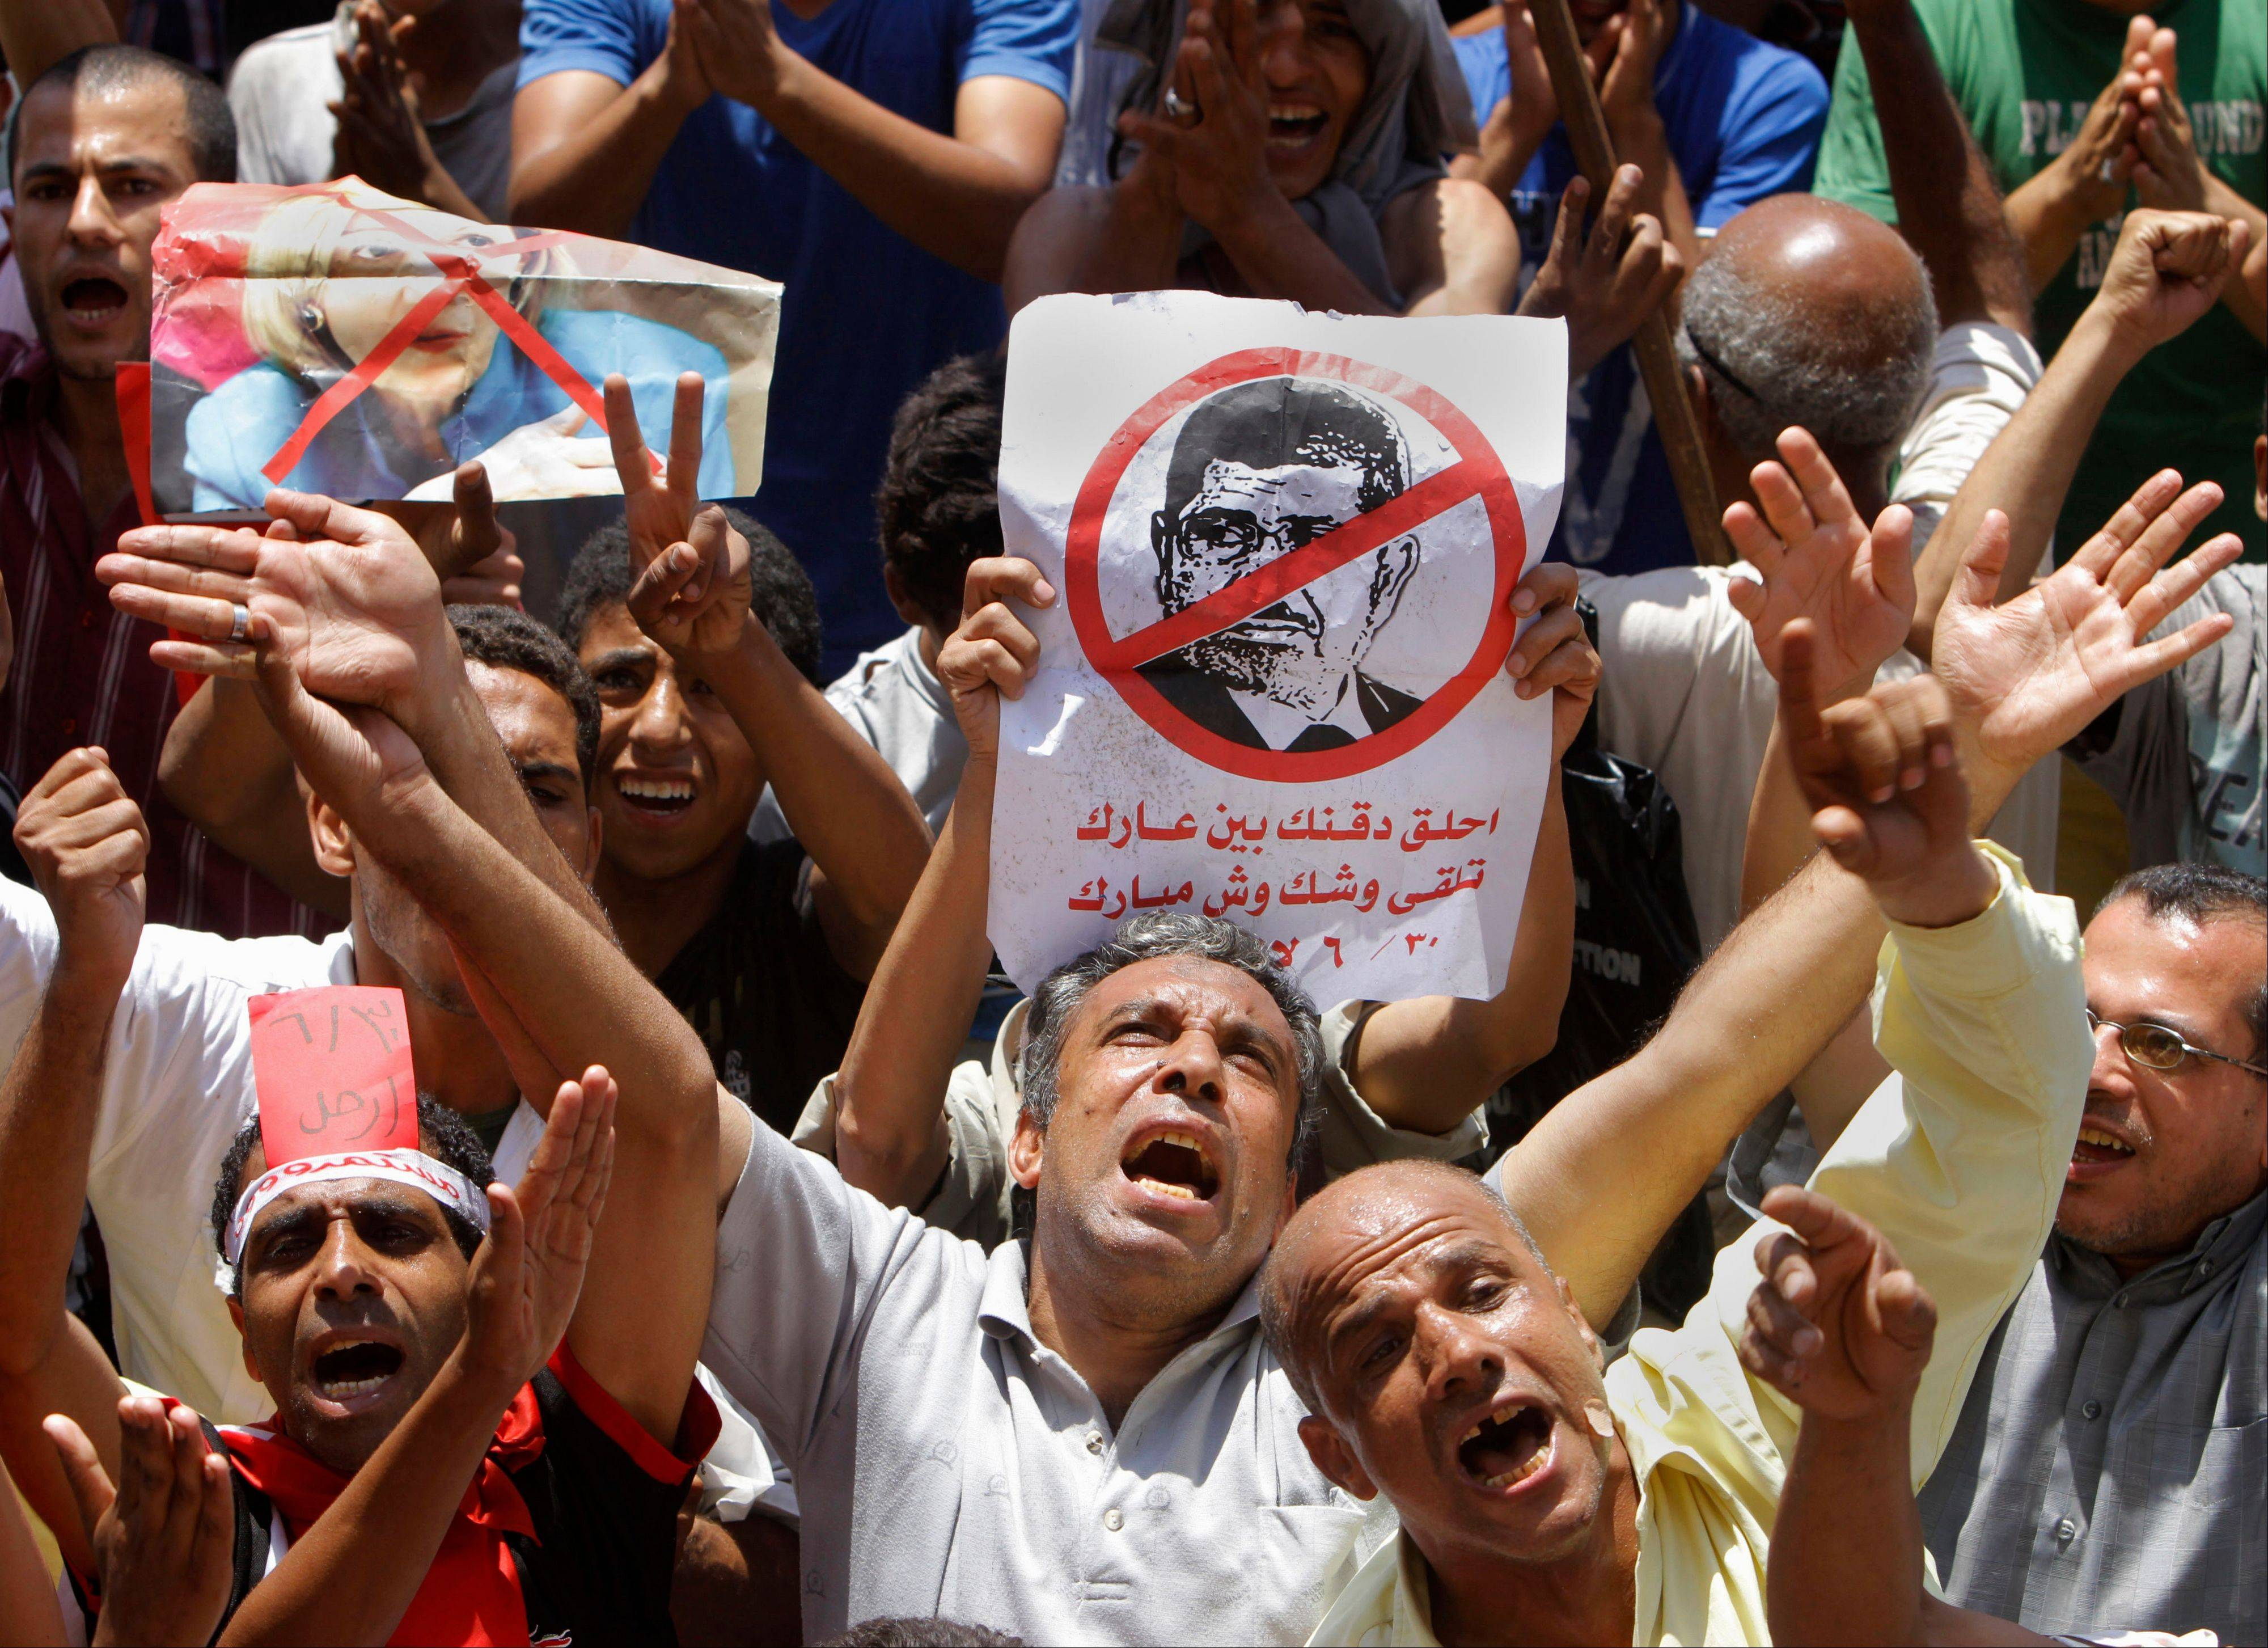 Egyptian protesters shout anti-Muslim Brotherhood slogans as they hold posters depicting U.S. Ambassador to Egypt Anne Patterson and President Mohammed Morsi during a protest in Tahrir Square, the focal point of Egyptian uprising, in Cairo, Egypt, Friday, June 28, 2013. Arabic on the poster at center reads, �shave your beard show your shame, you will look like Mubarak.� Egypt�s opposition plans to bring out massive crowds on Sunday in protests nationwide, vowing to force President Mohammed Morsi to step down.